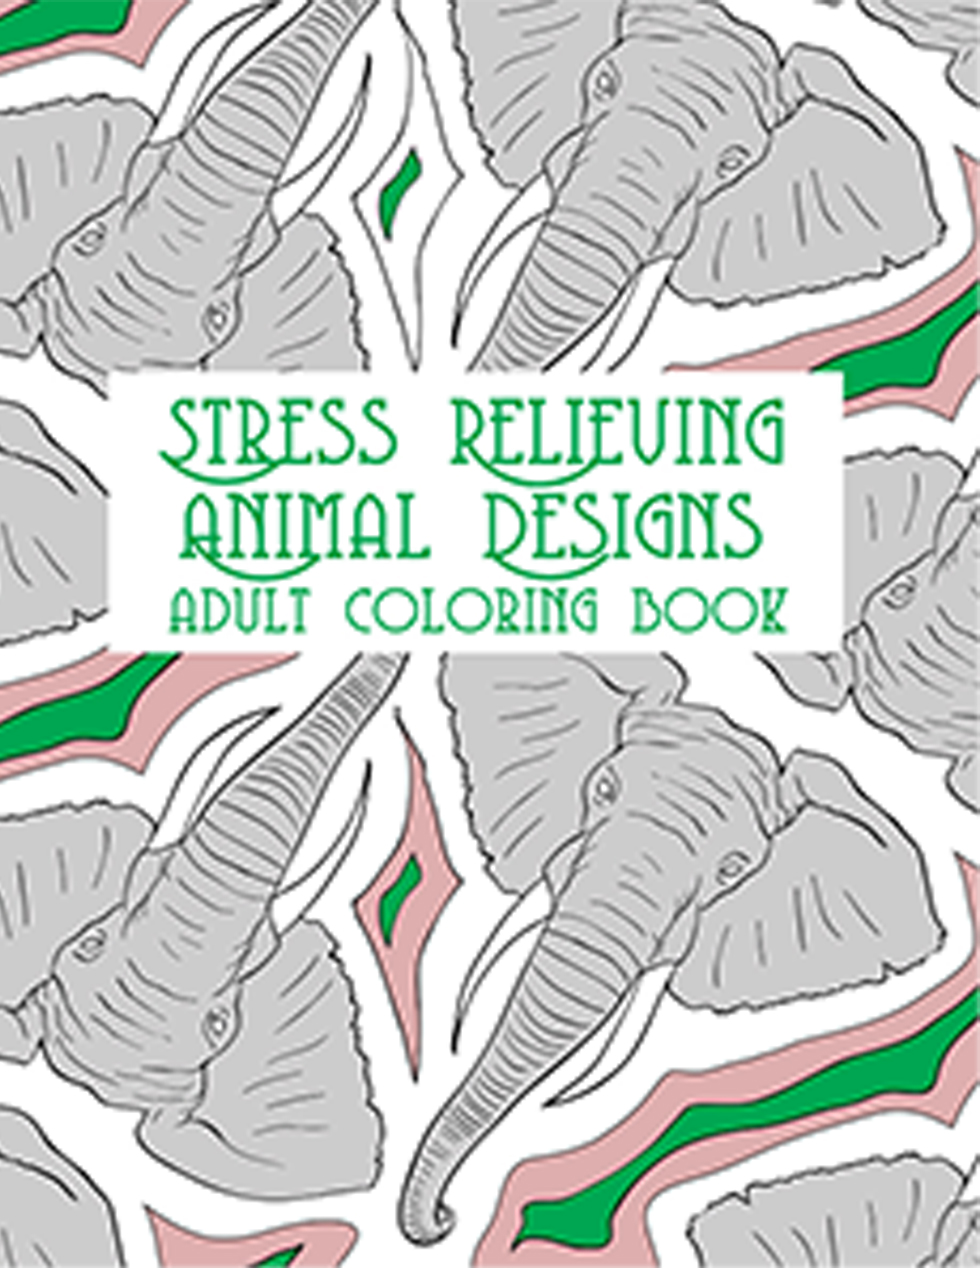 Happies - Stress Relieving Animal Designs Adult Coloring Book